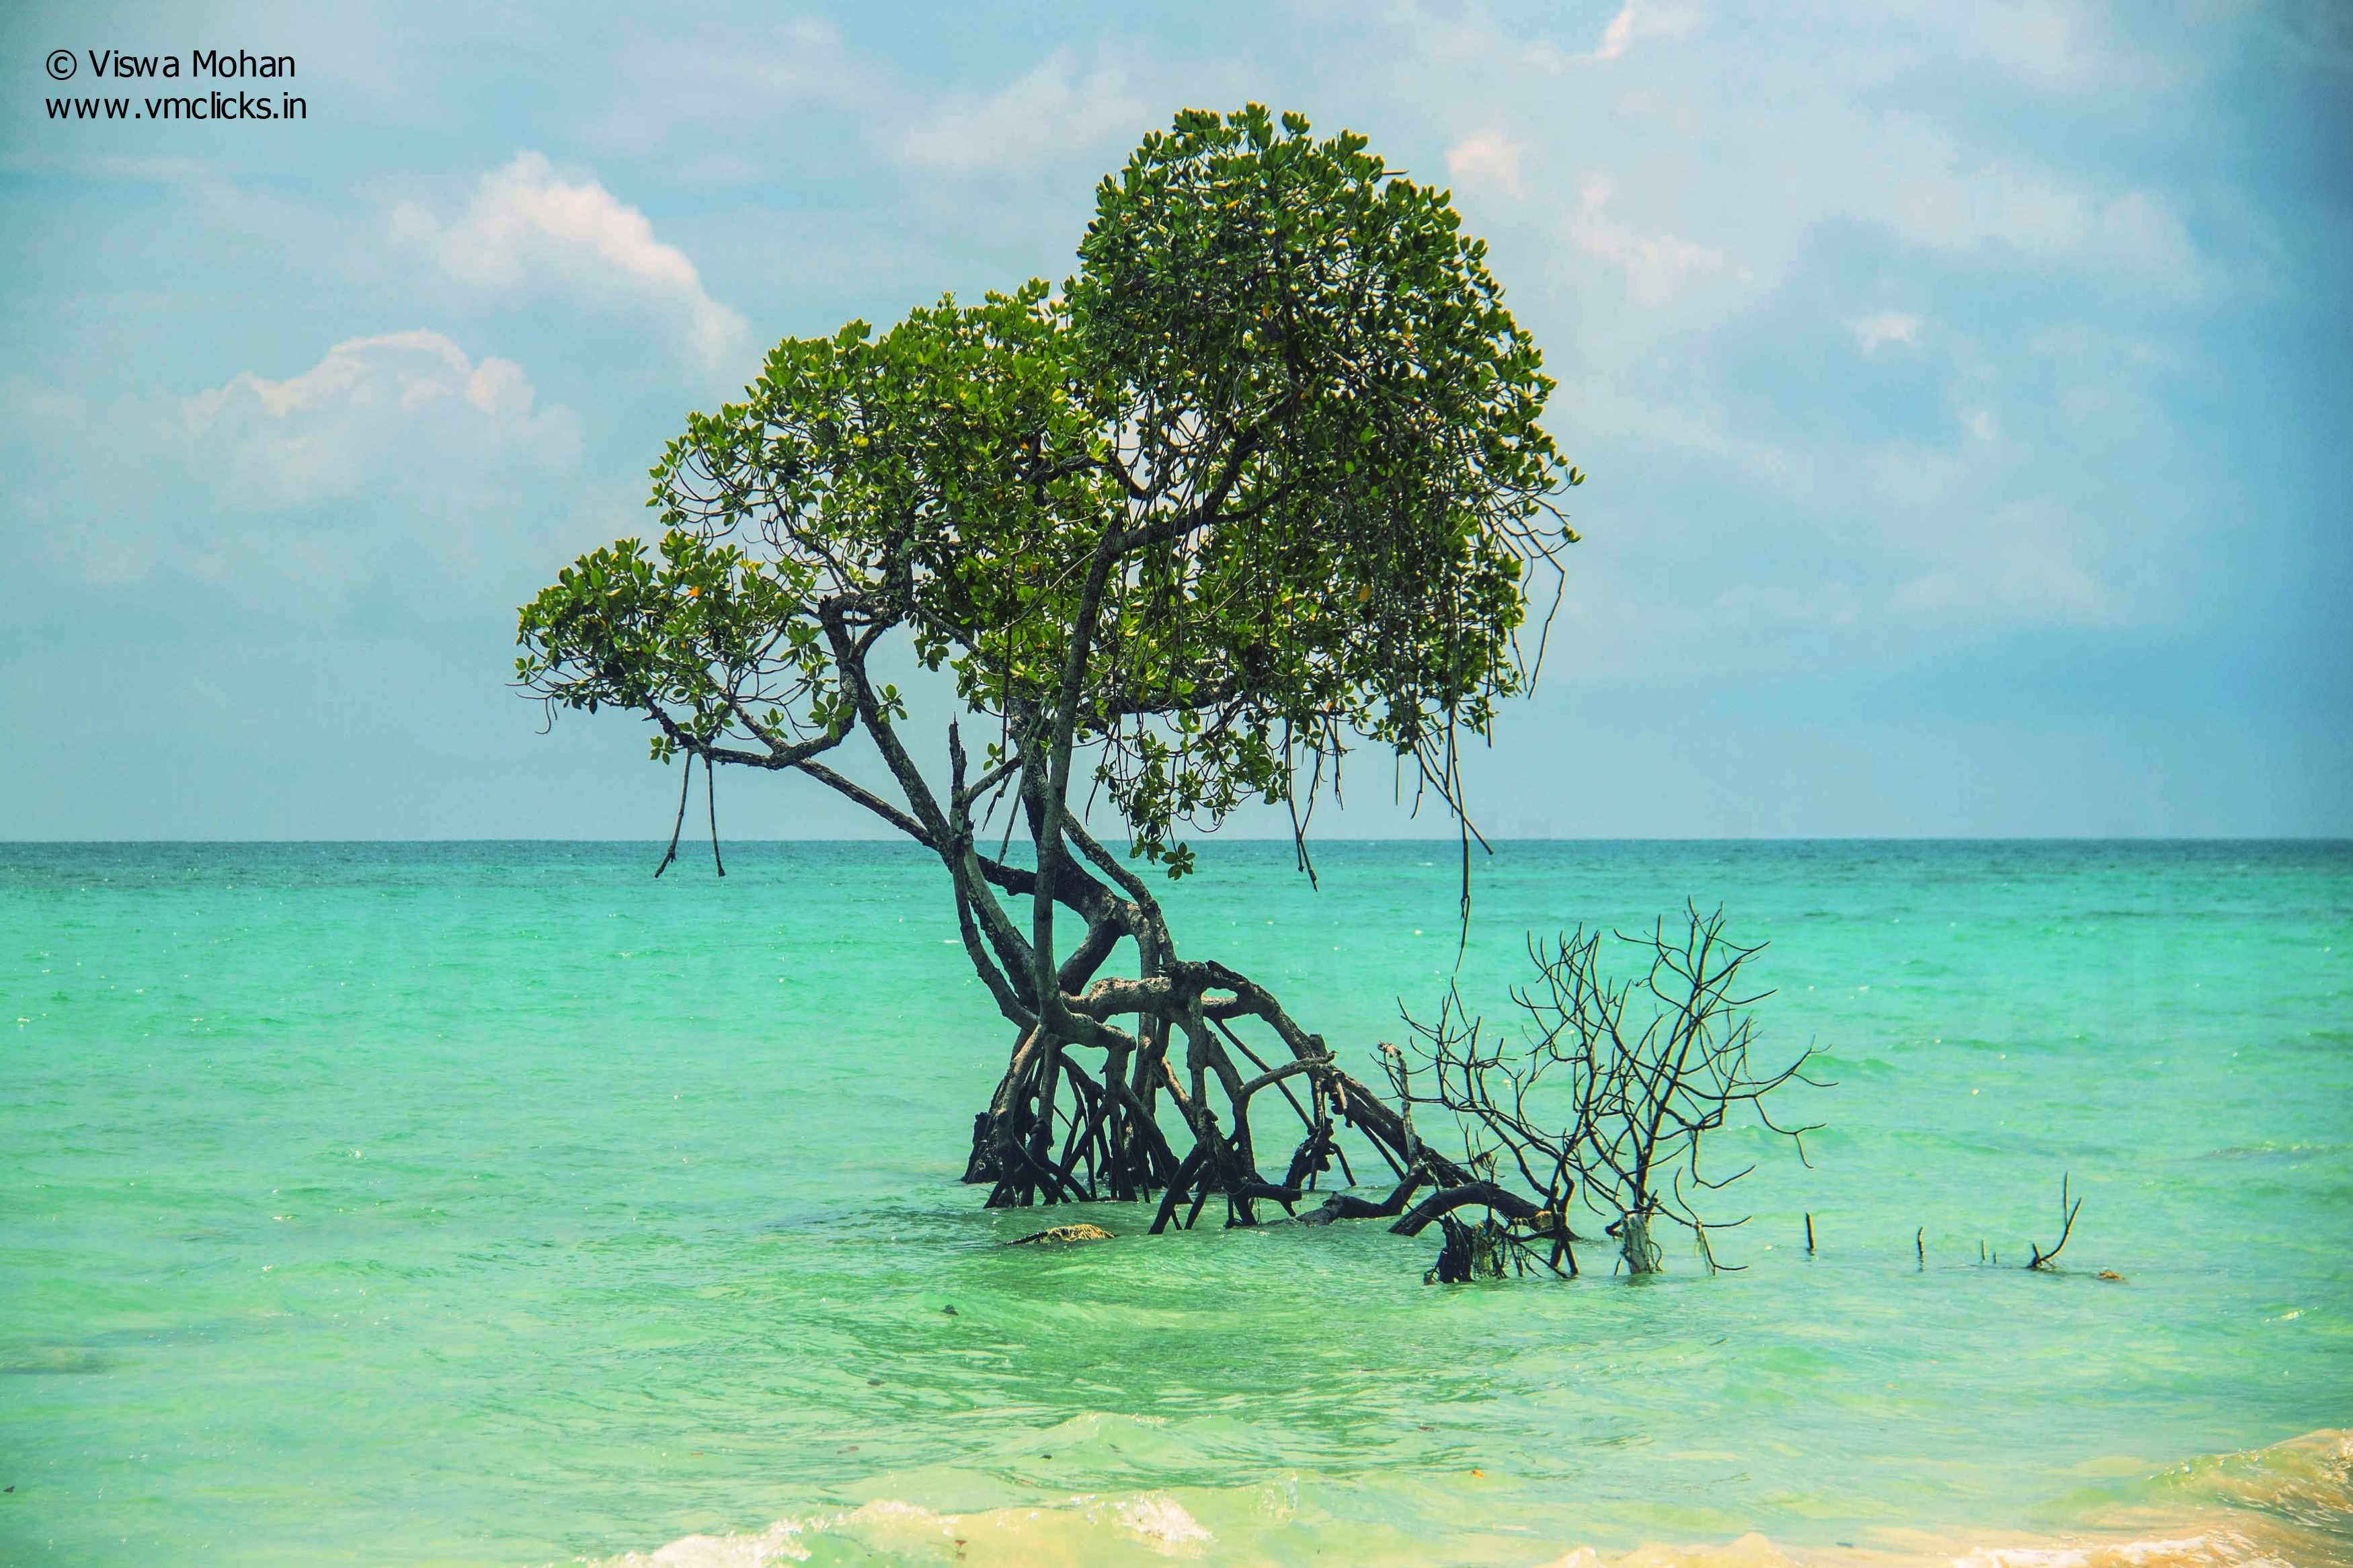 Mangroves at Havelock Islands